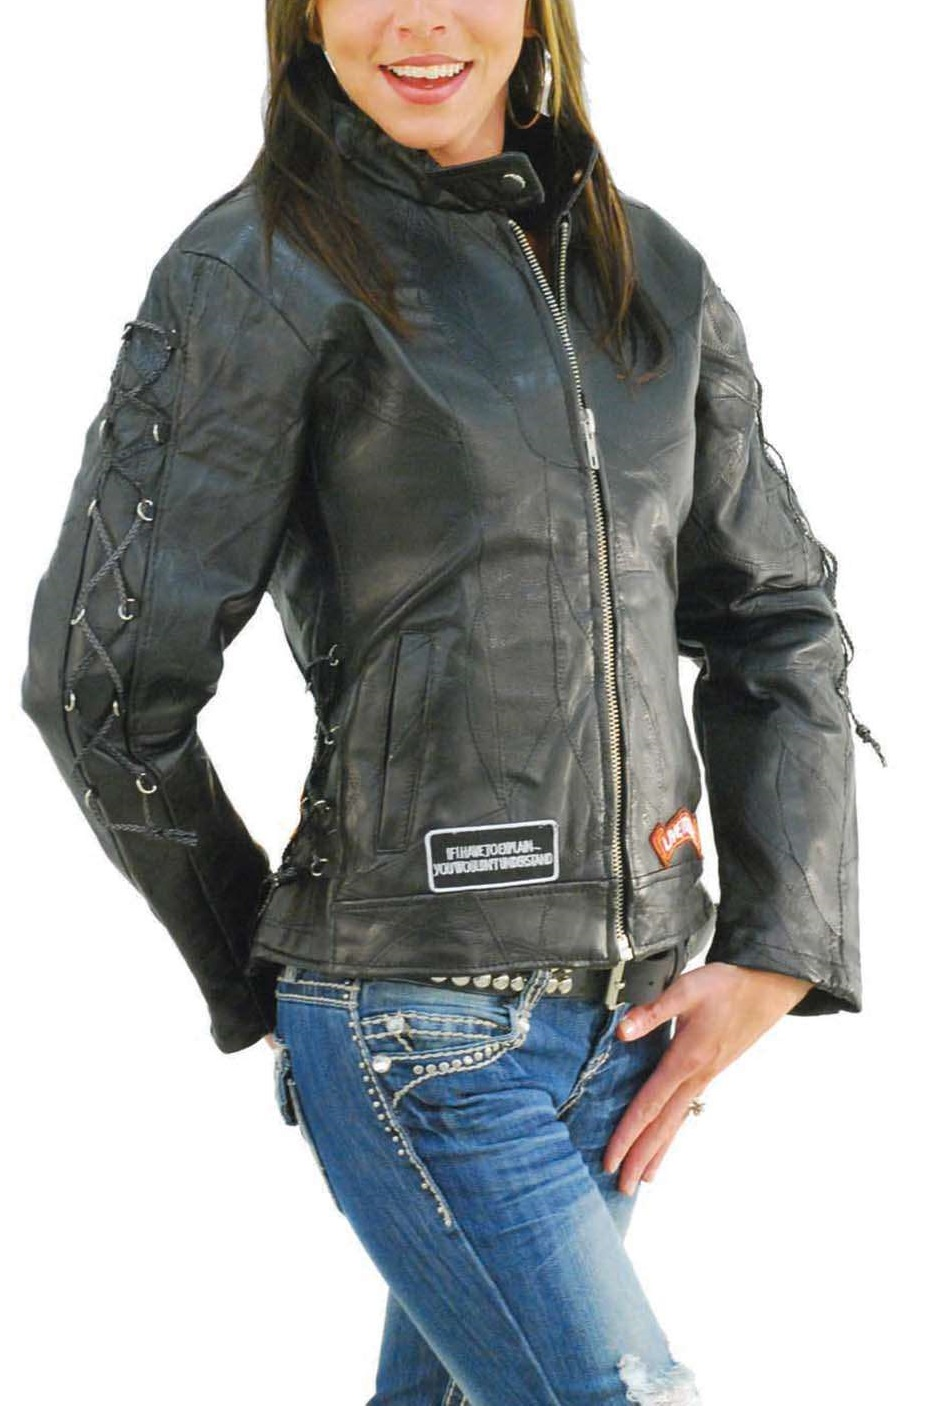 Women's Motorcycle Jacket With Patches - Jackets Maker